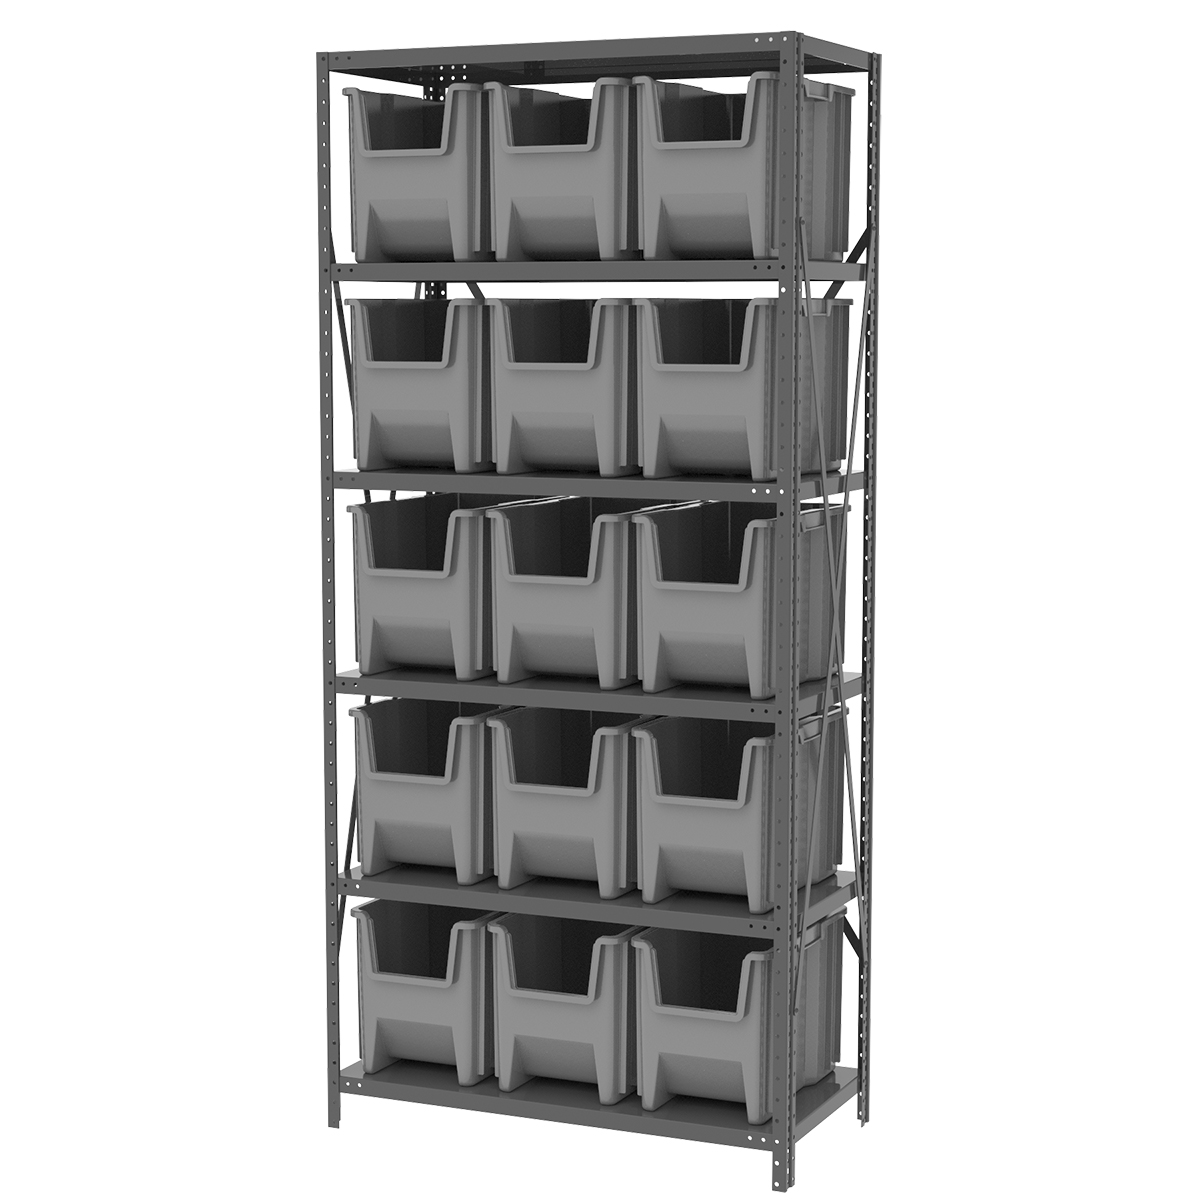 Steel Shelving Kit, 18x36x79, 16 Bins, Gray/Gray.  This item sold in carton quantities of 1.